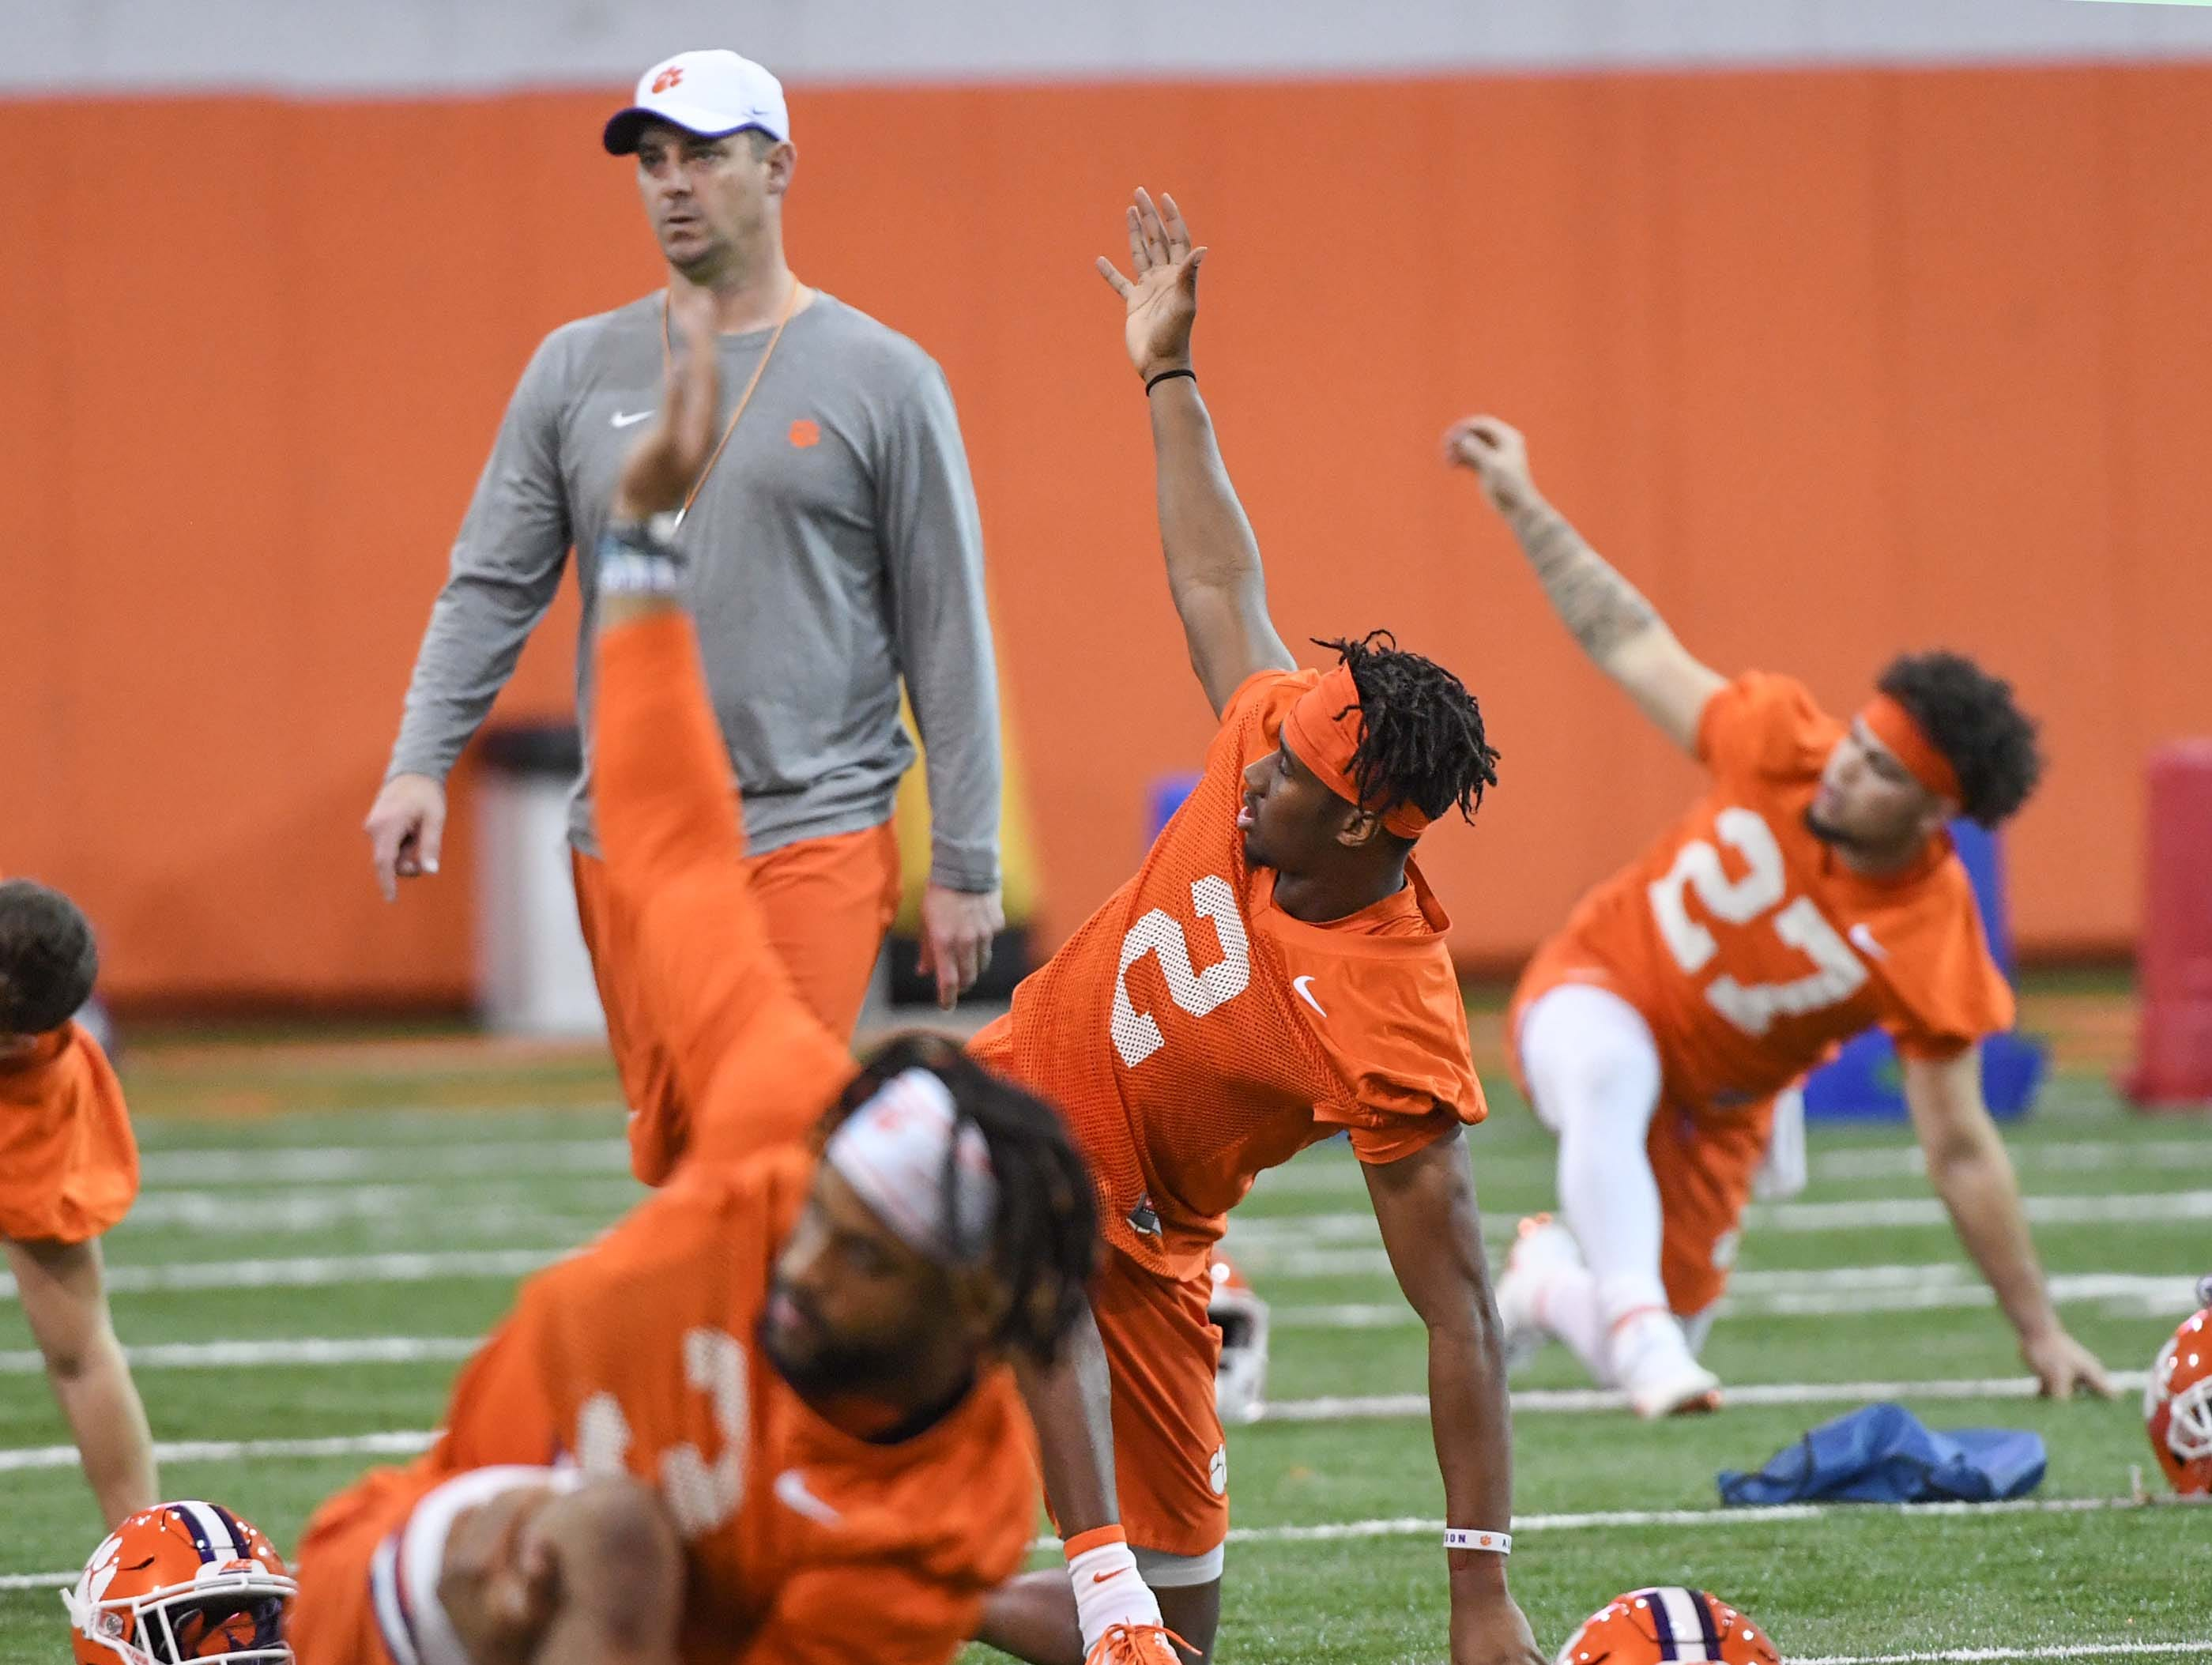 Clemson wide receiver Frank Ladson, Jr. (2) stretches during practice at the Poe Indoor Facility in Clemson Friday.